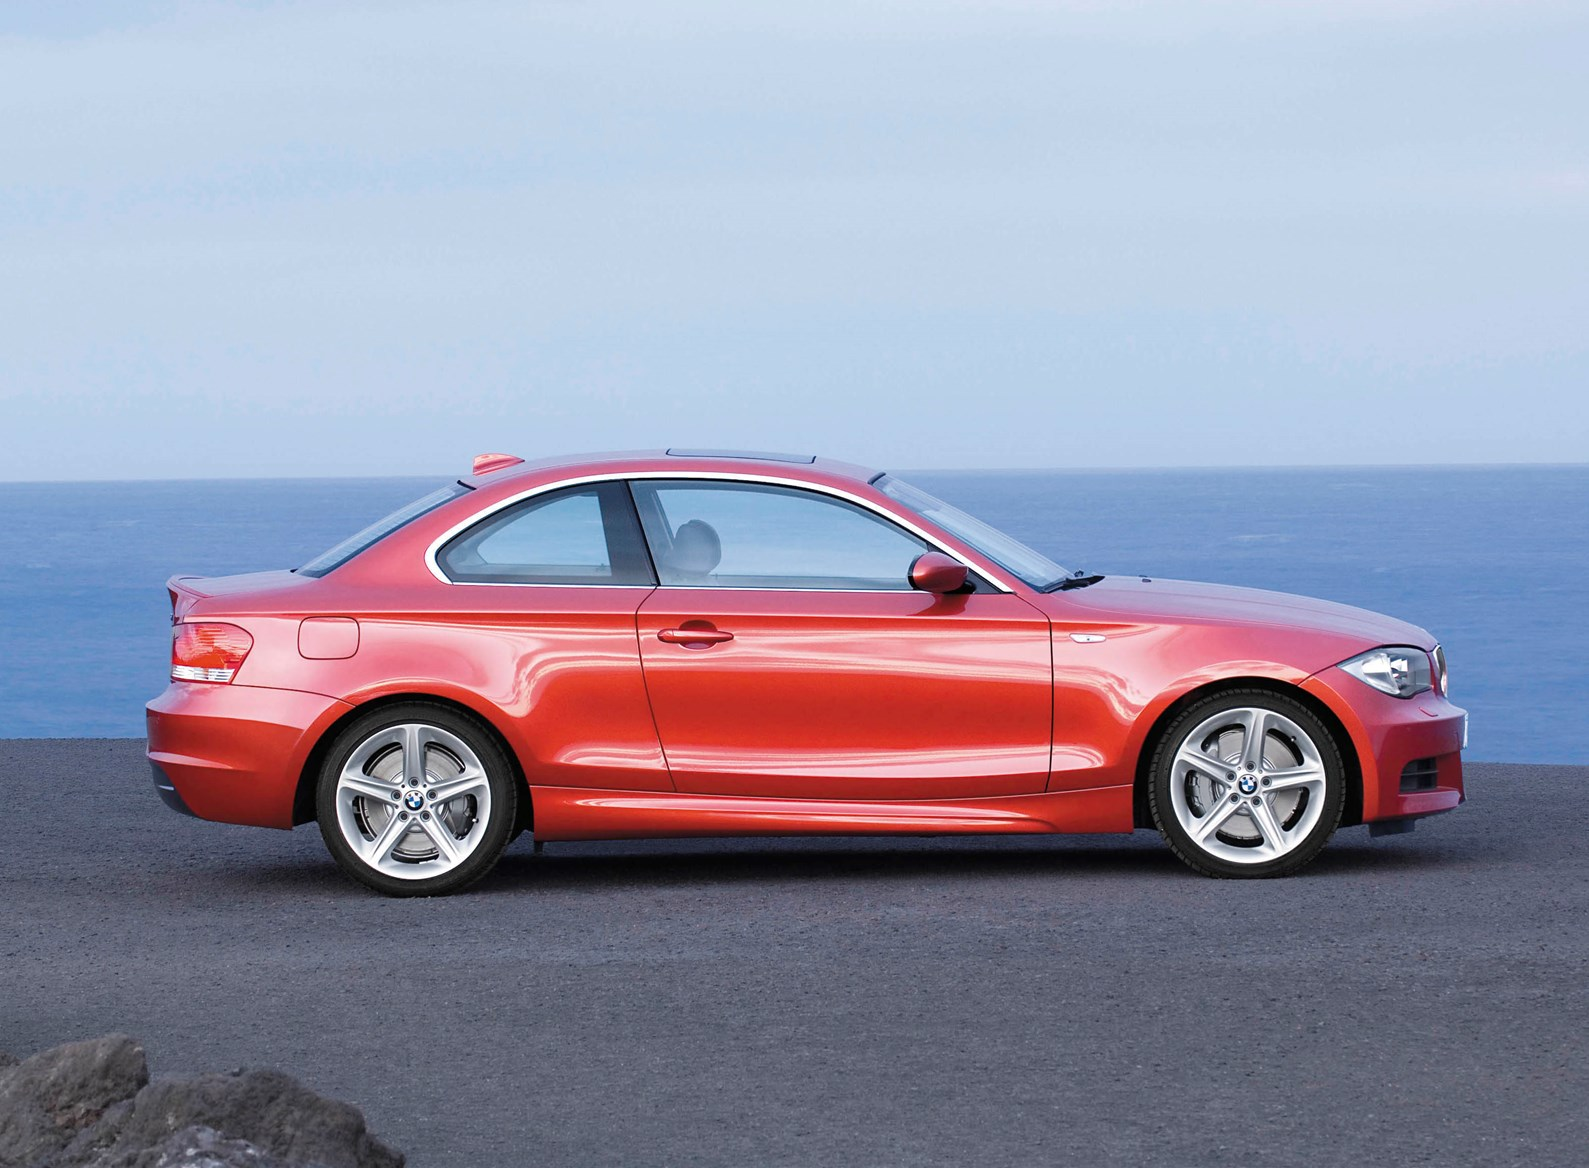 used bmw 1-series coupe  2007